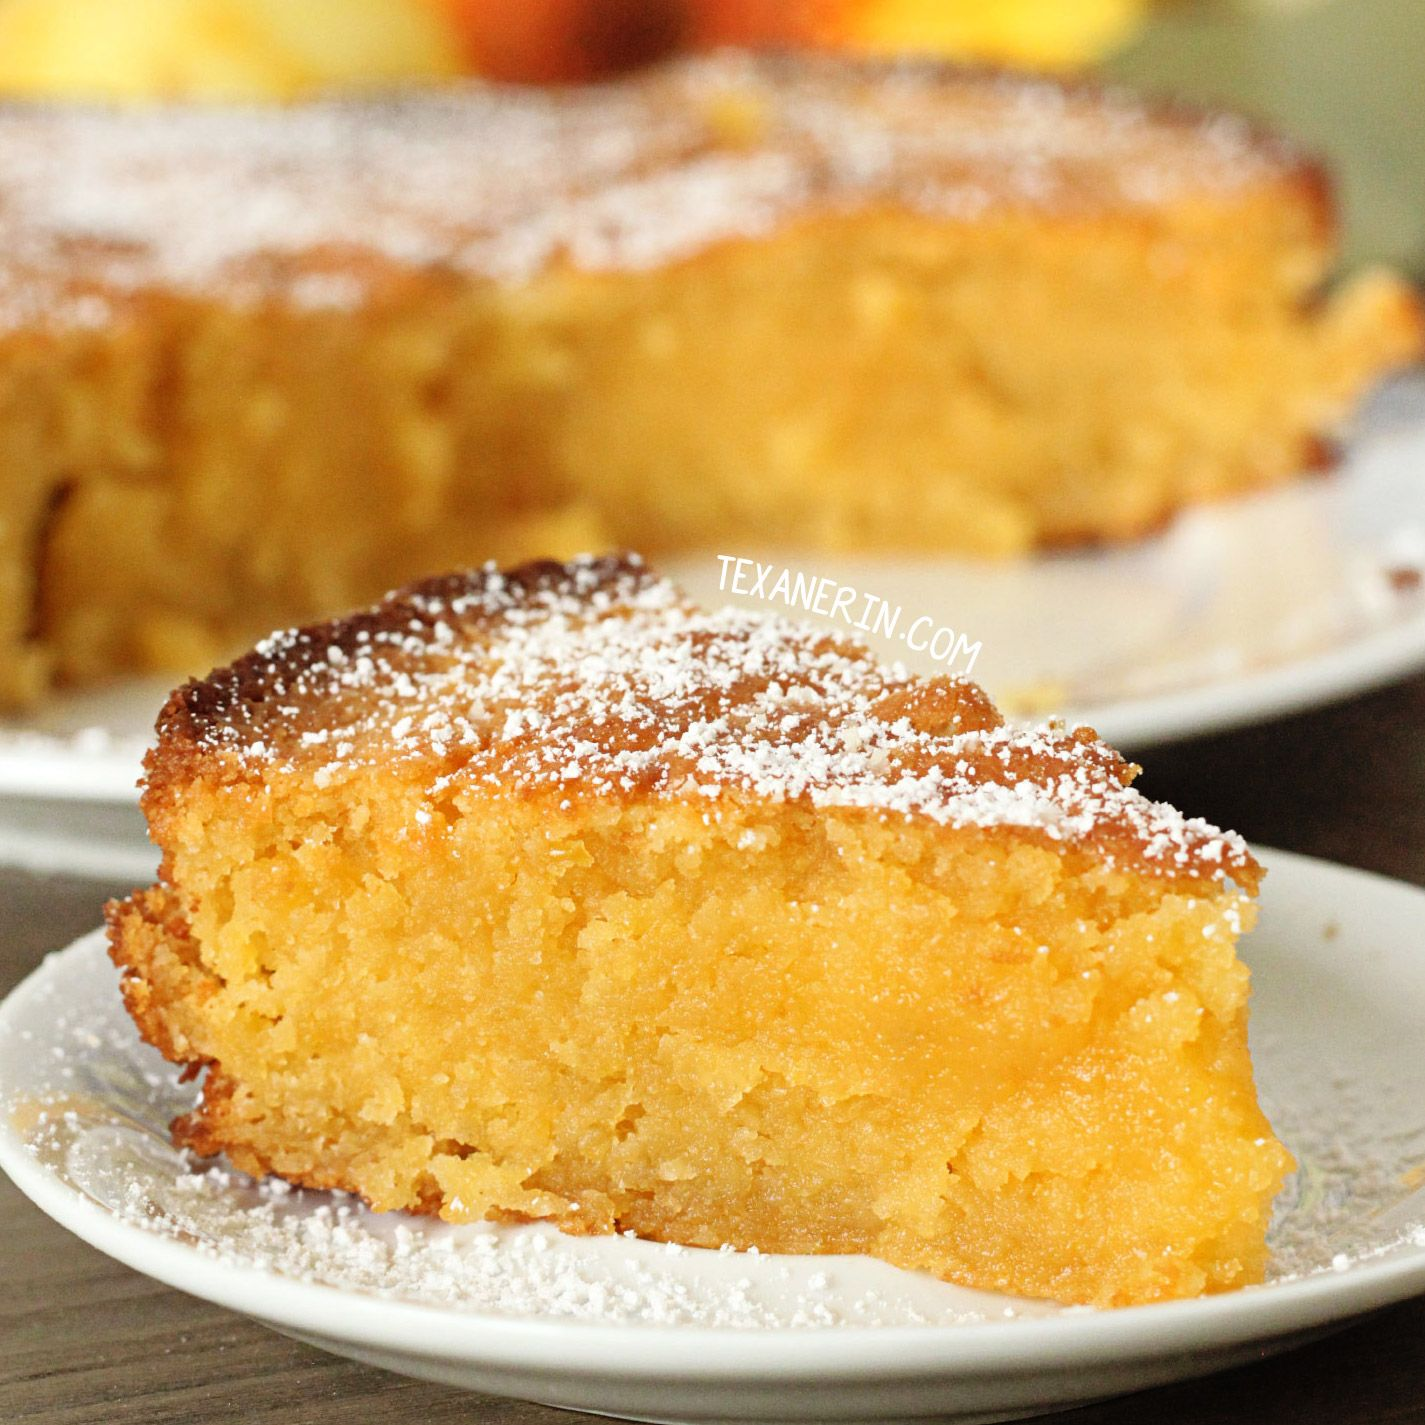 This Italian Lemon Cake Uses Almond Flour And Has A Great